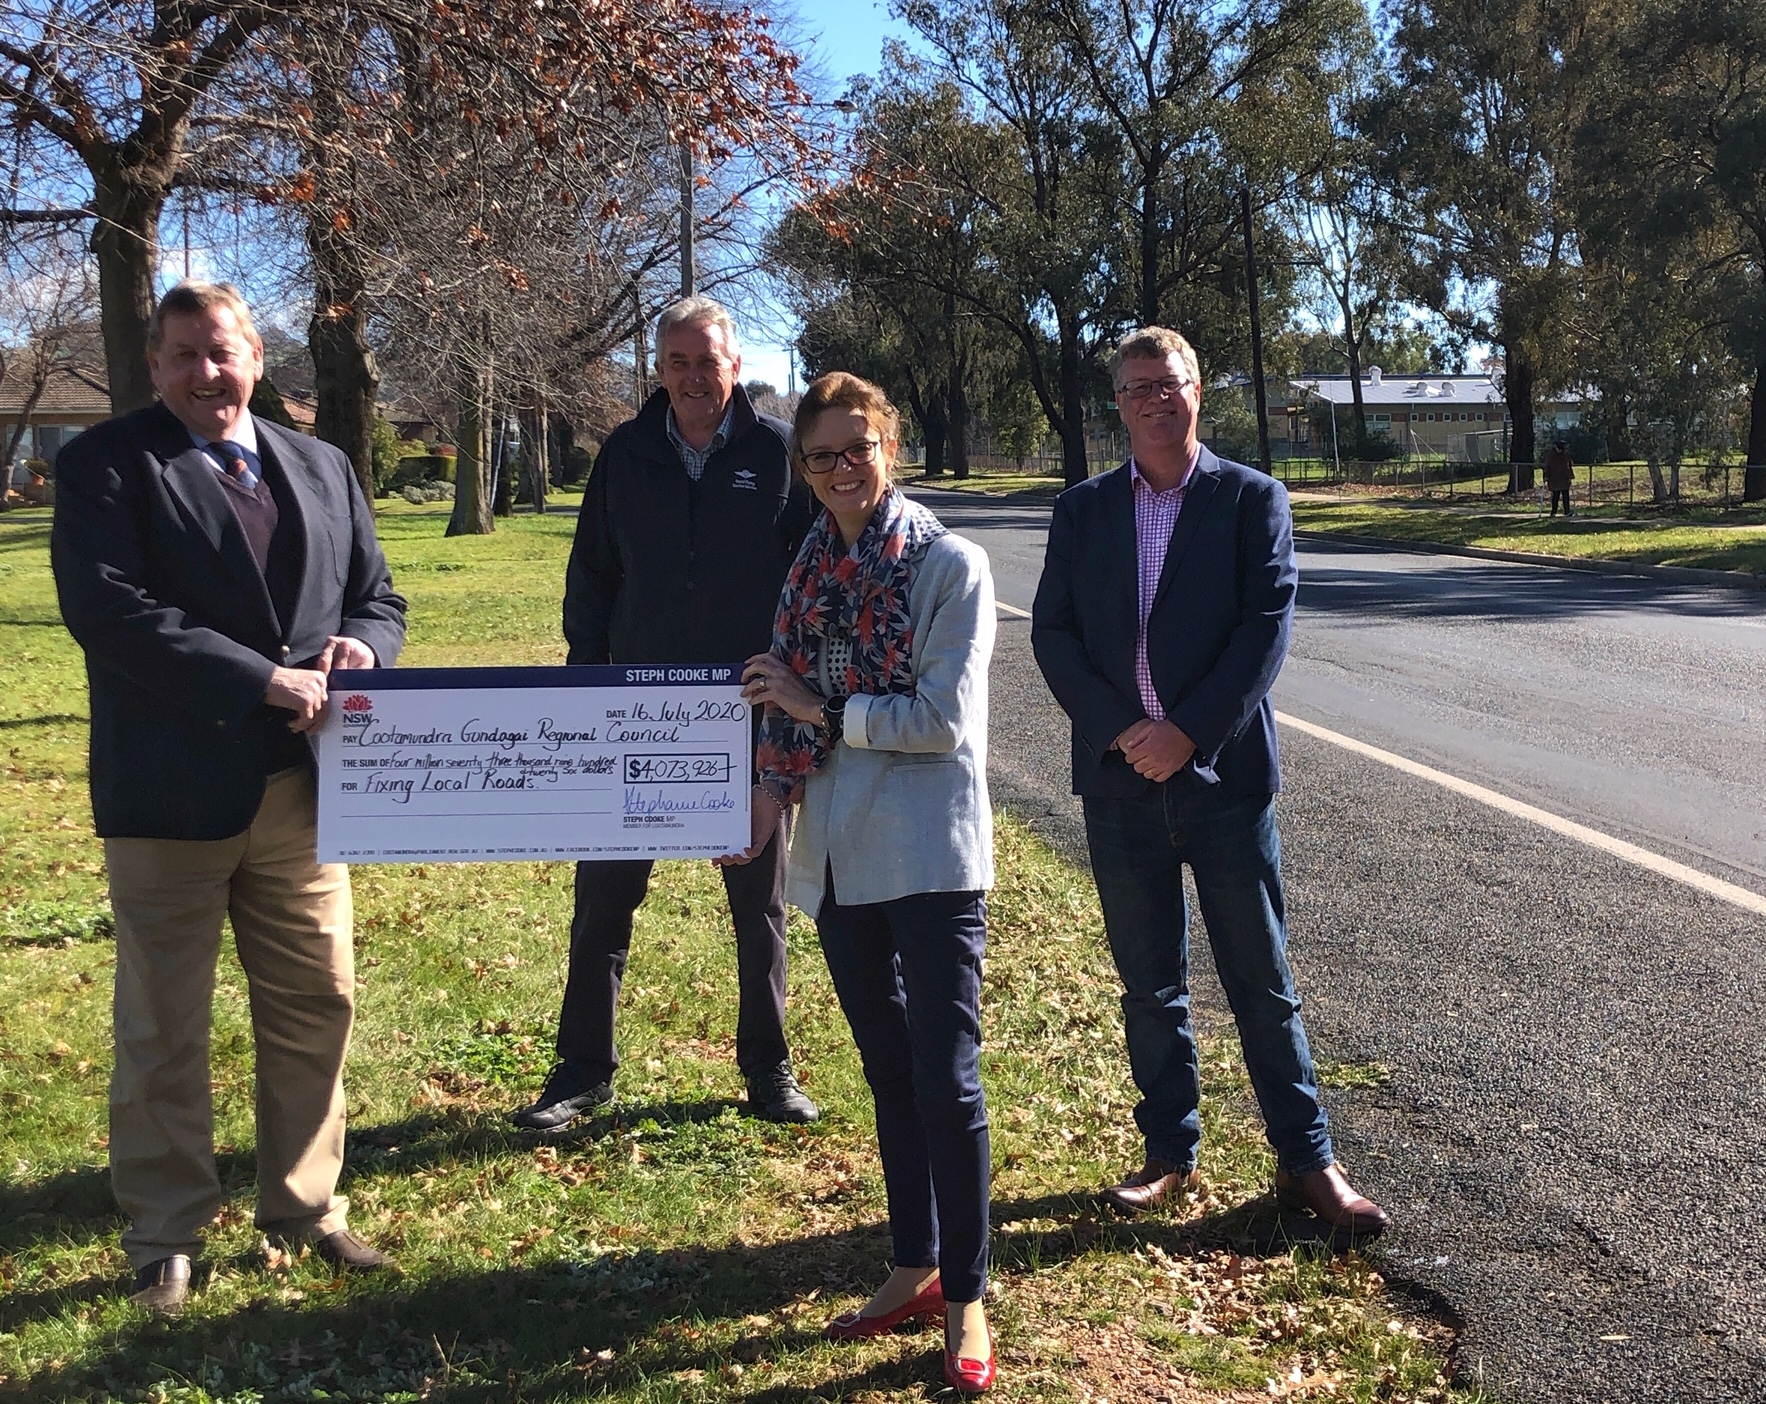 Steph Cooke and Mayor Abb McAllister hold a large cheque and smile at the camera. They stand on the side of a road.